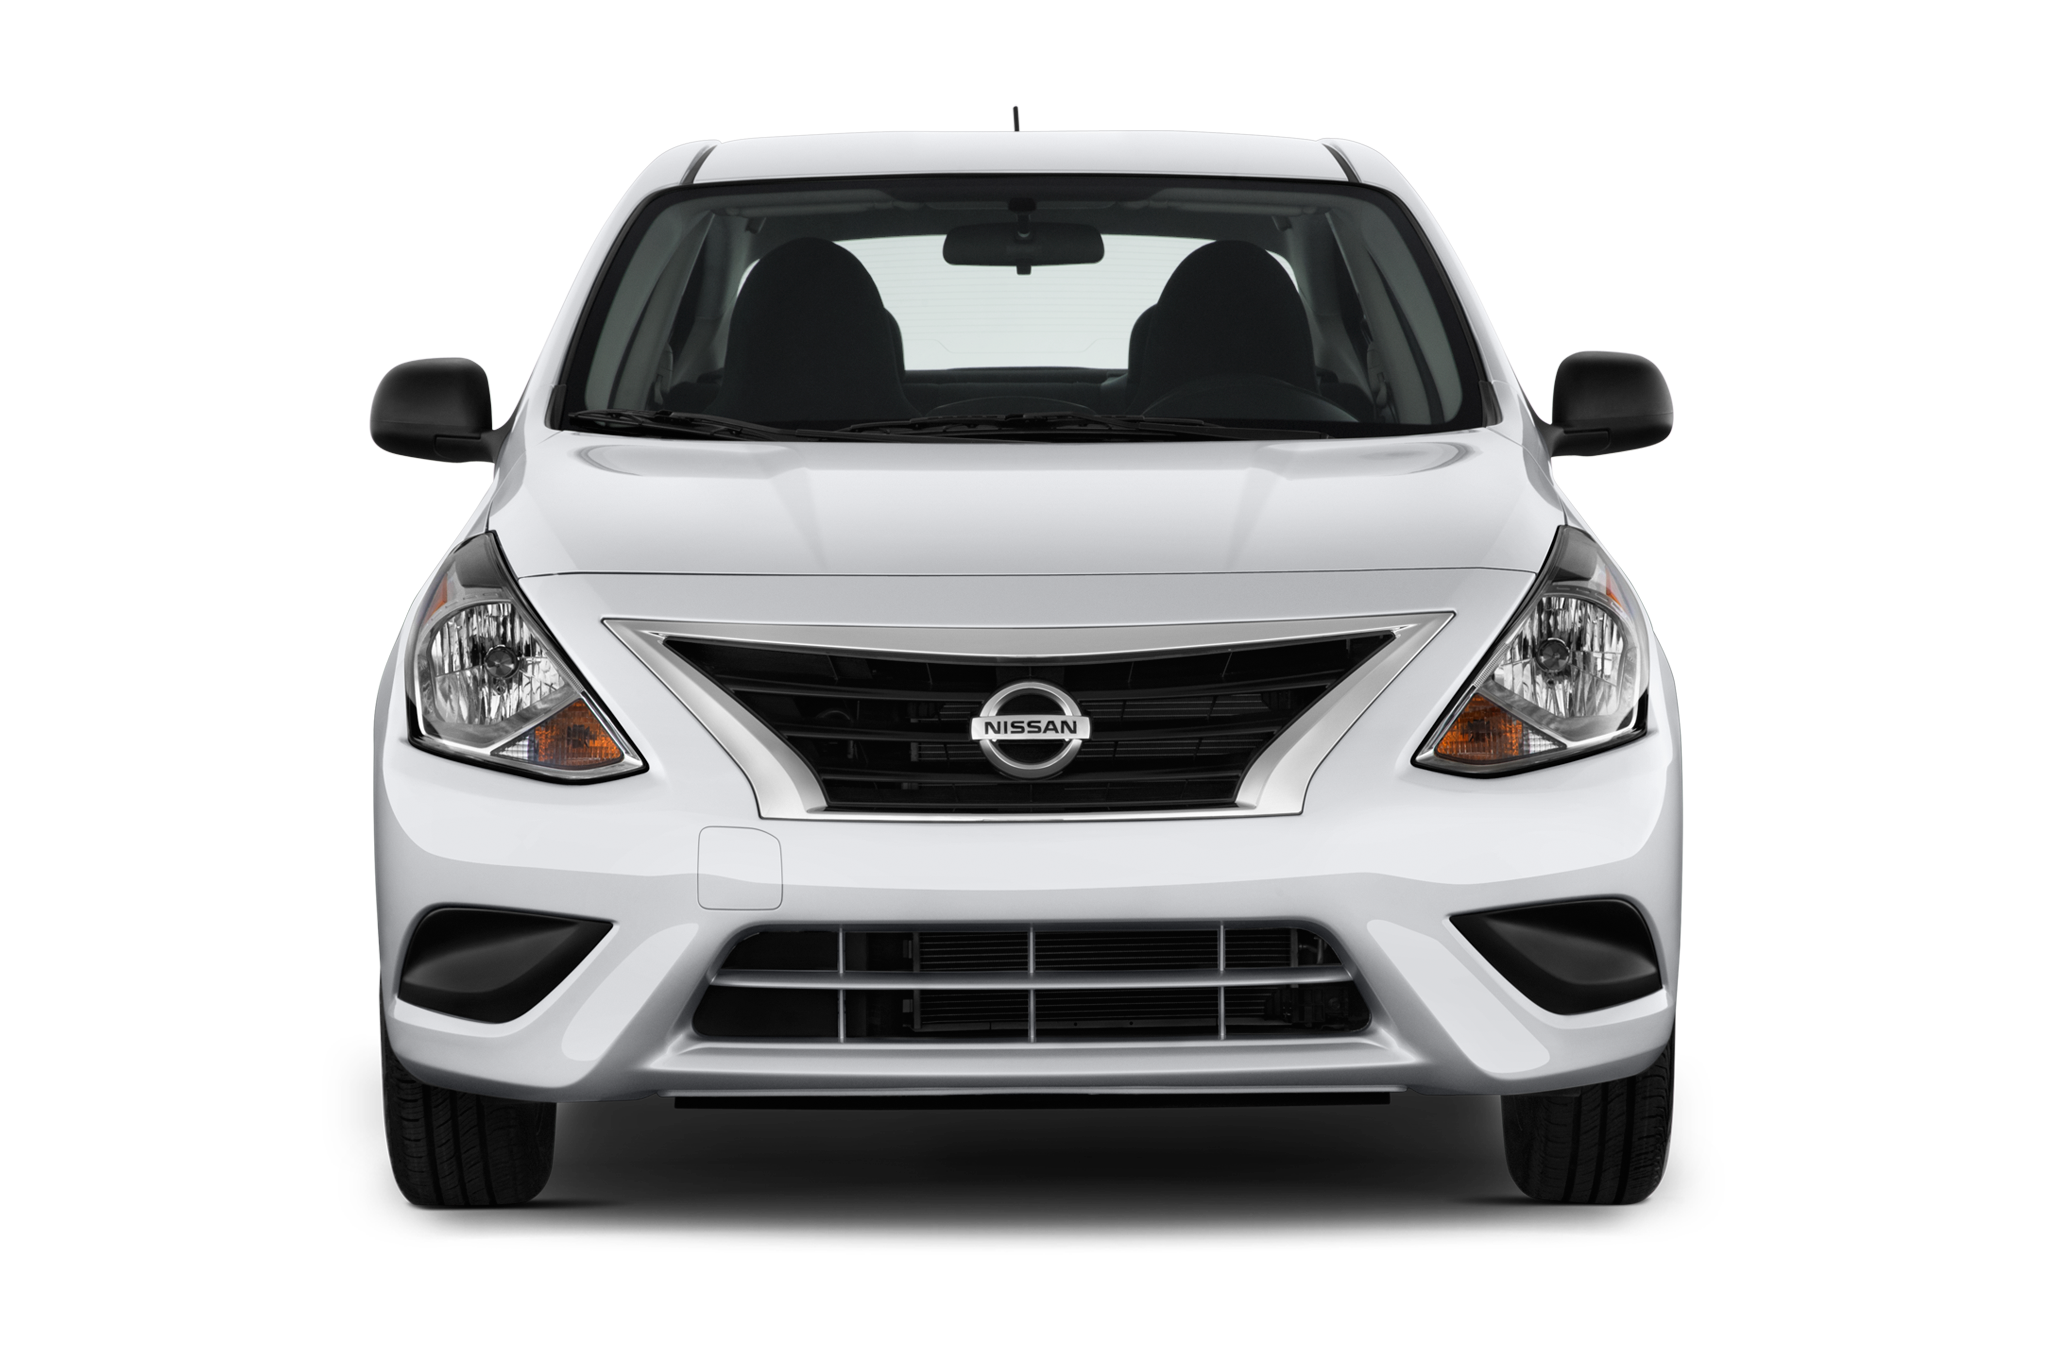 2015 nissan versa sedan refreshed for new york. Black Bedroom Furniture Sets. Home Design Ideas